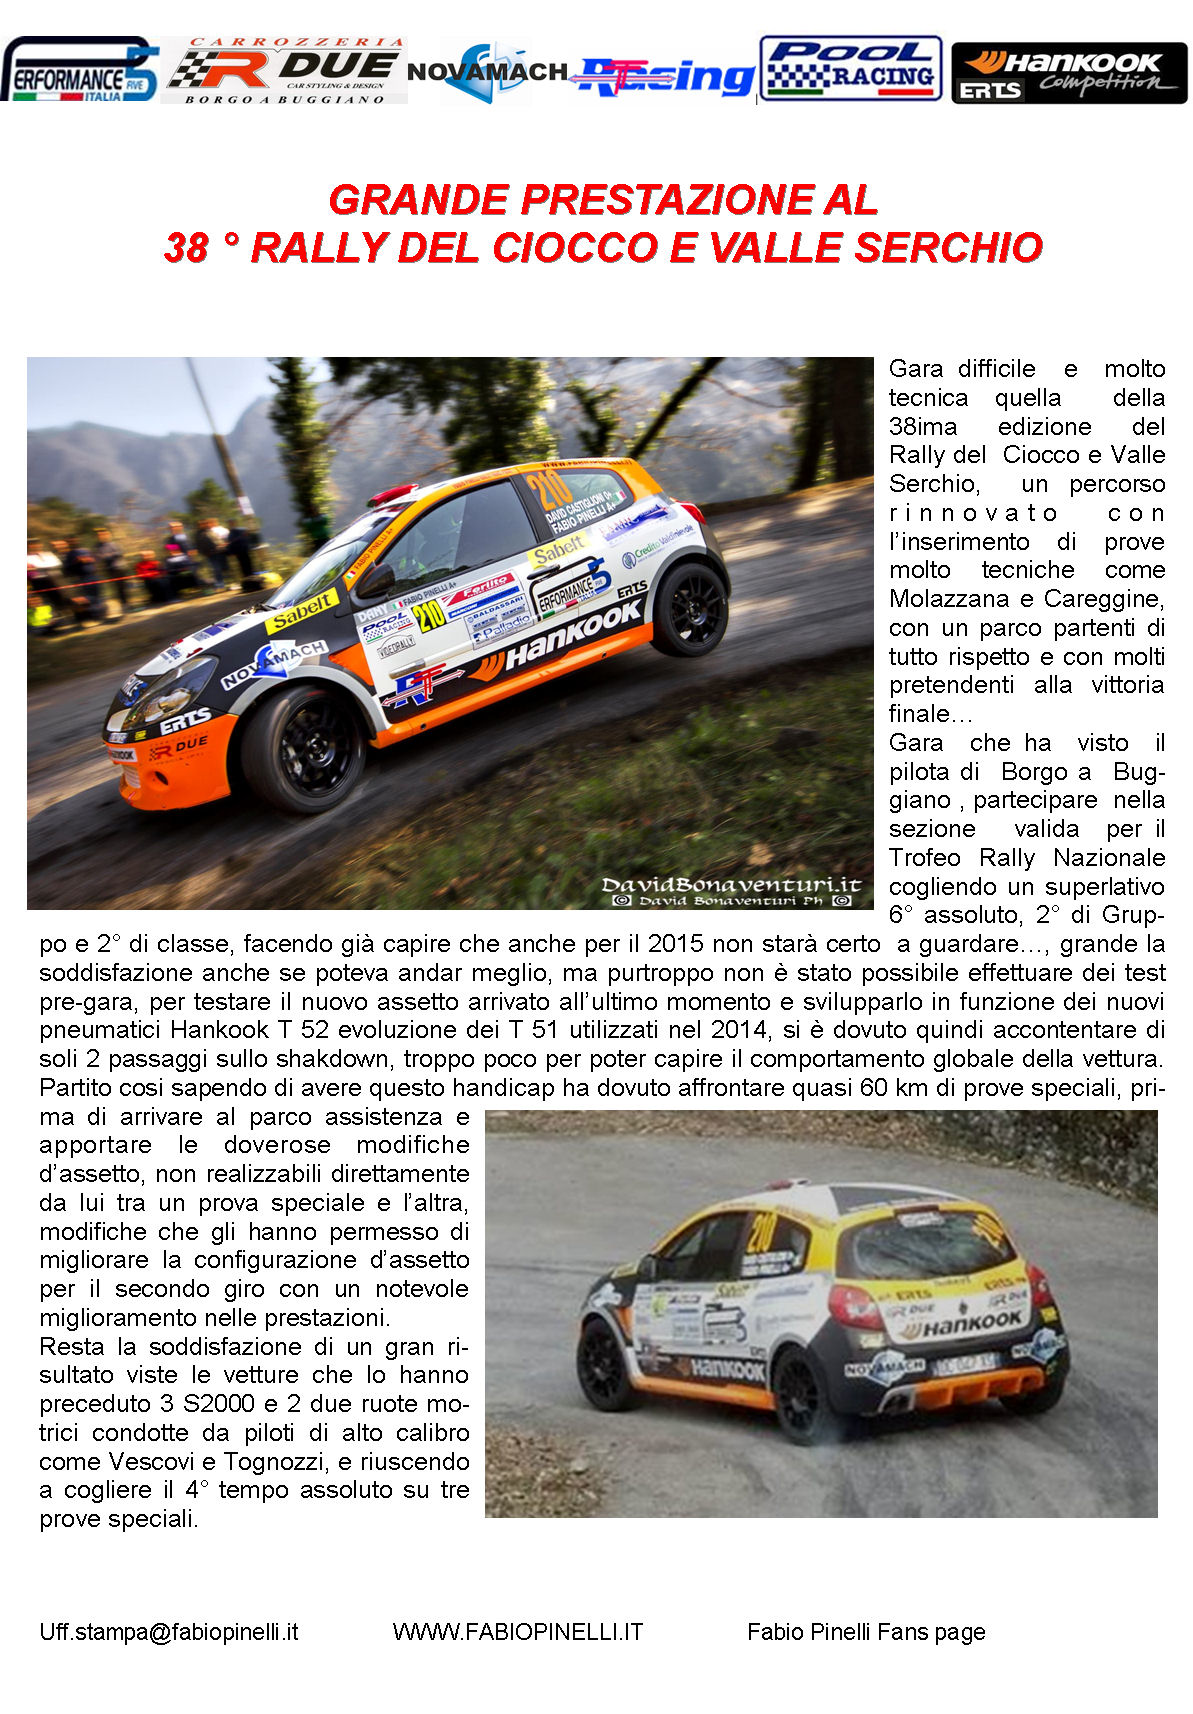 38- RALLY DEL CIOCCO E VALLE SERCHIO